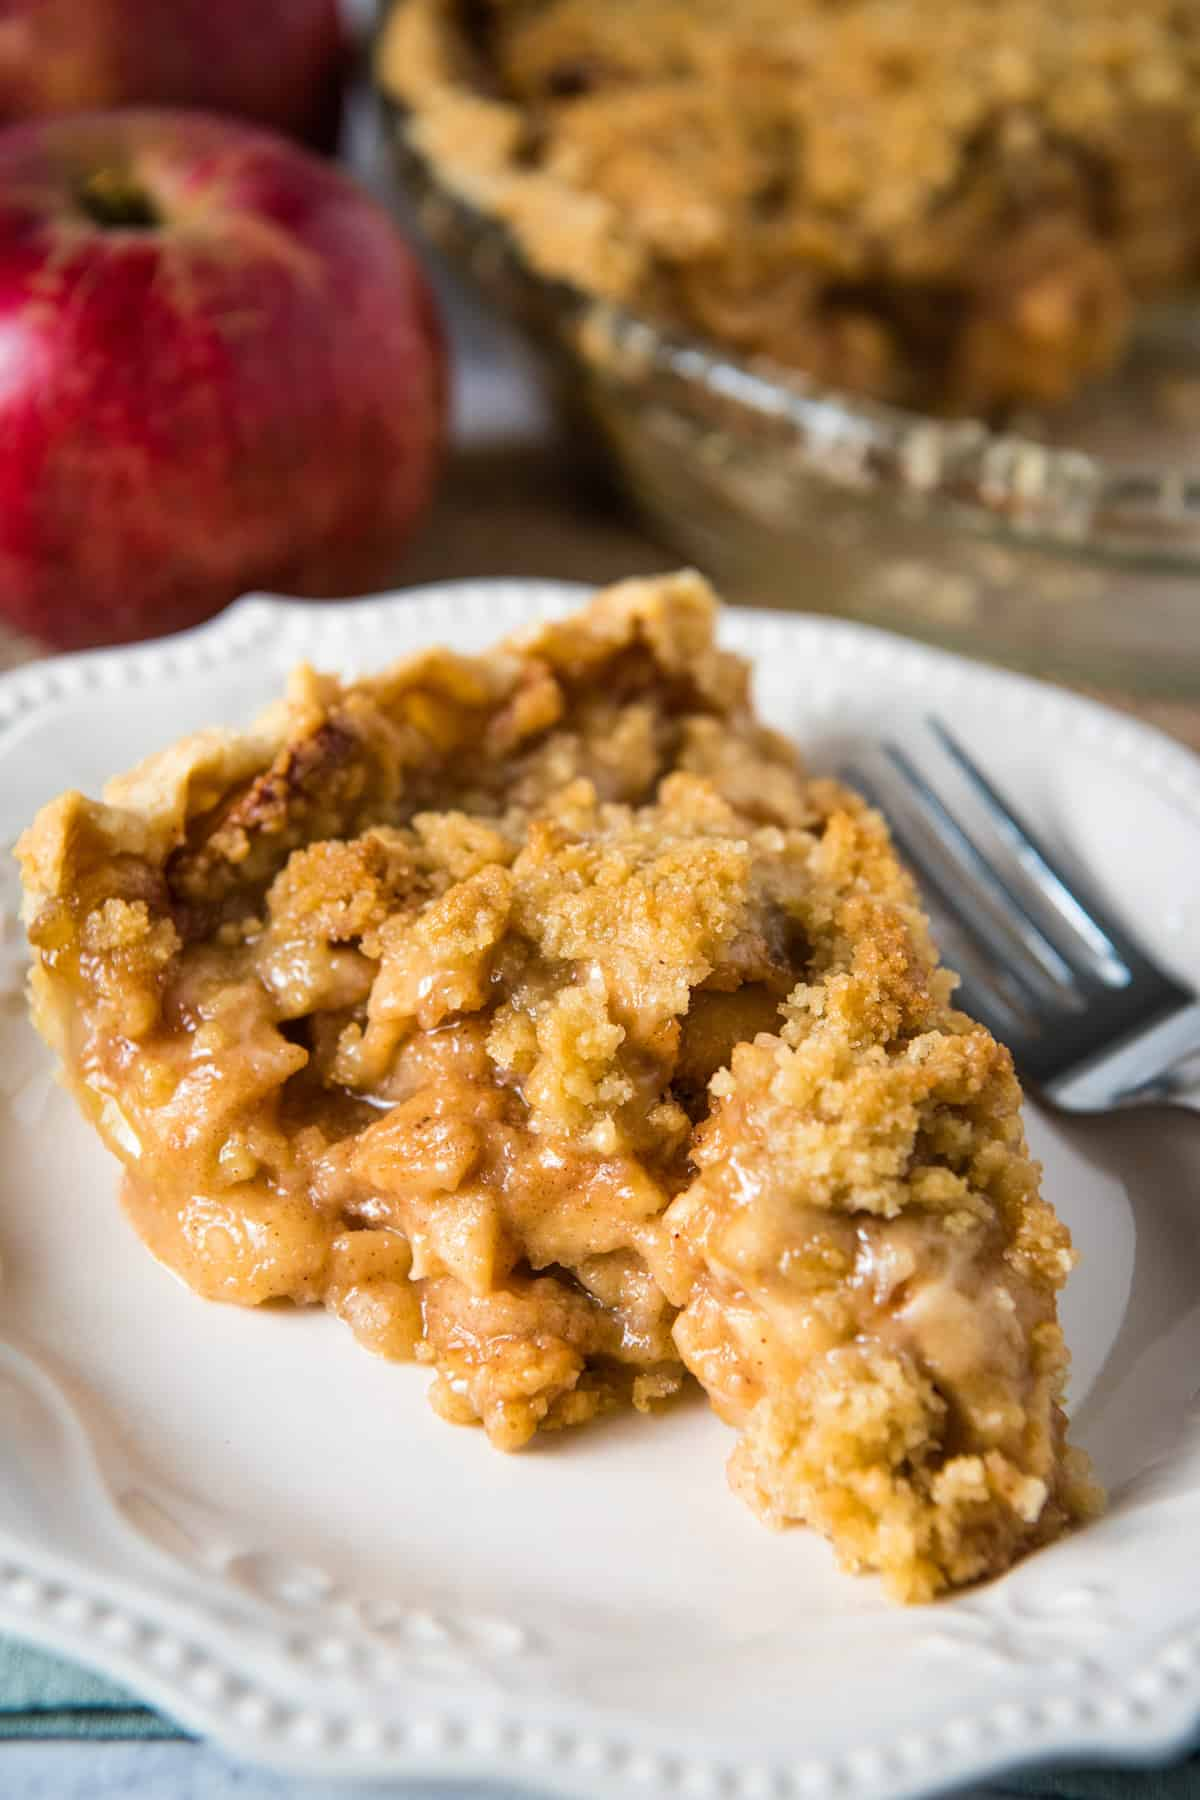 slice of apple pie with streusel topping on white plate with fork